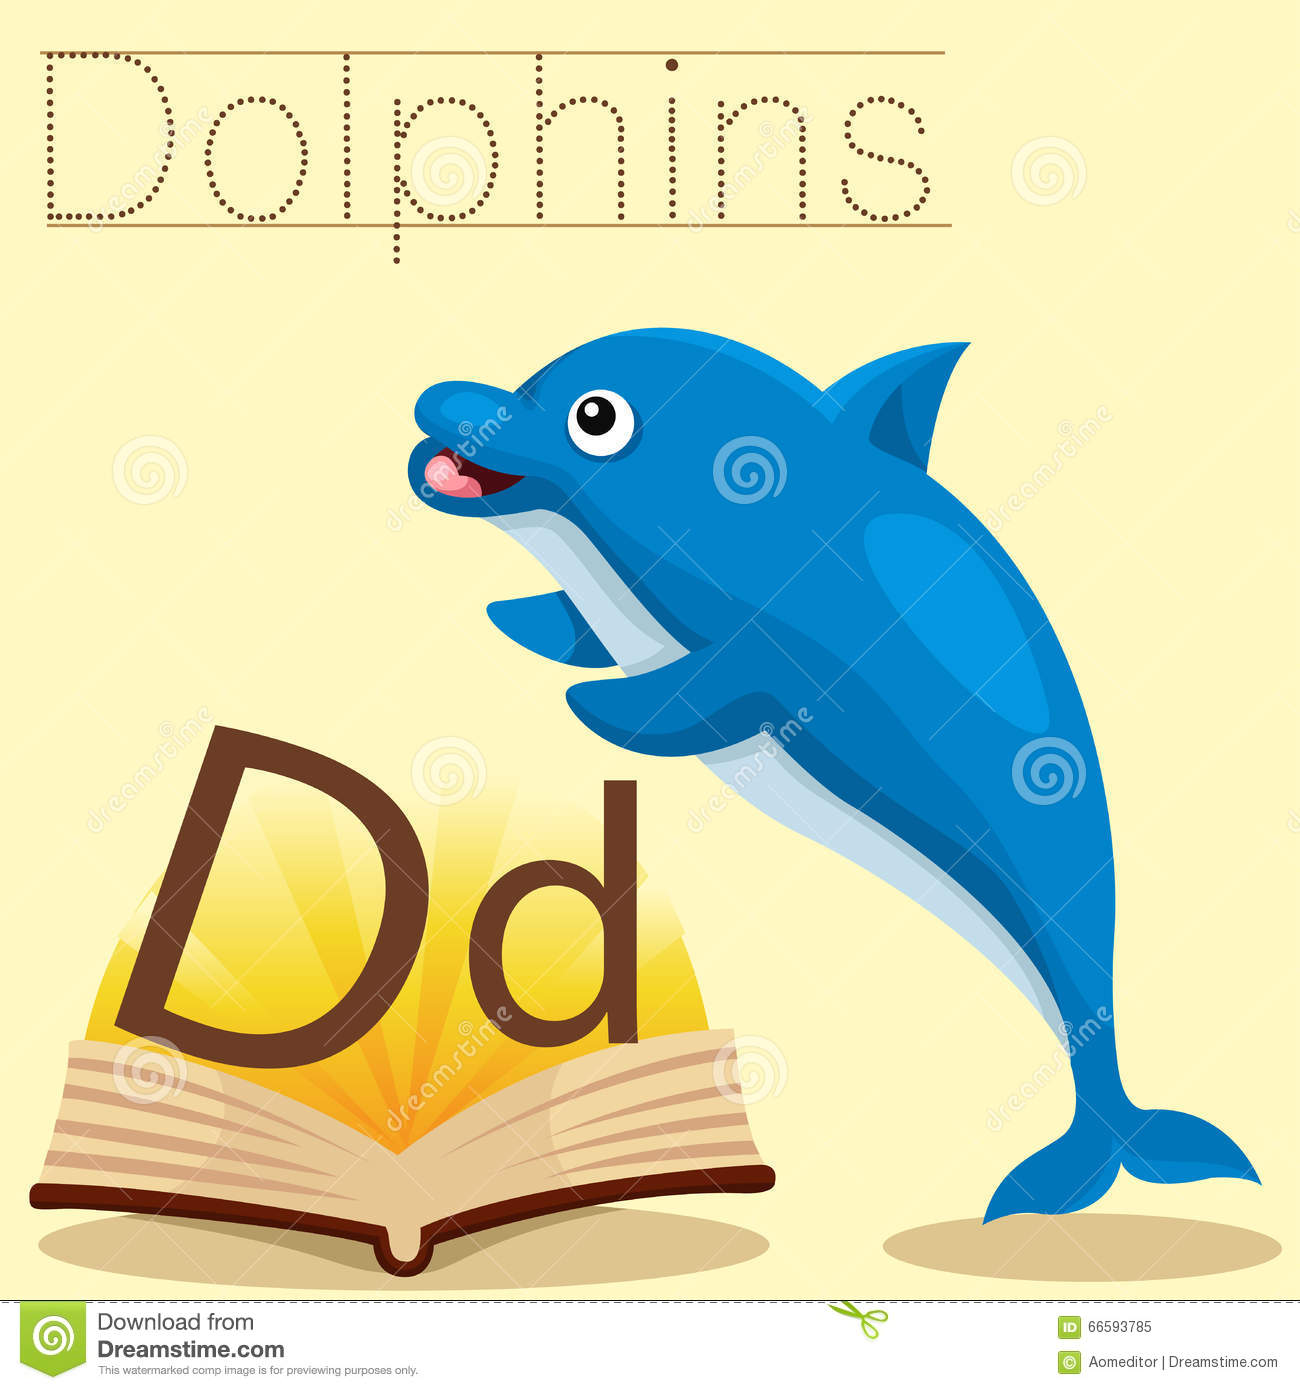 Illustrator Of D For Dolphins Vocabulary Stock Vector